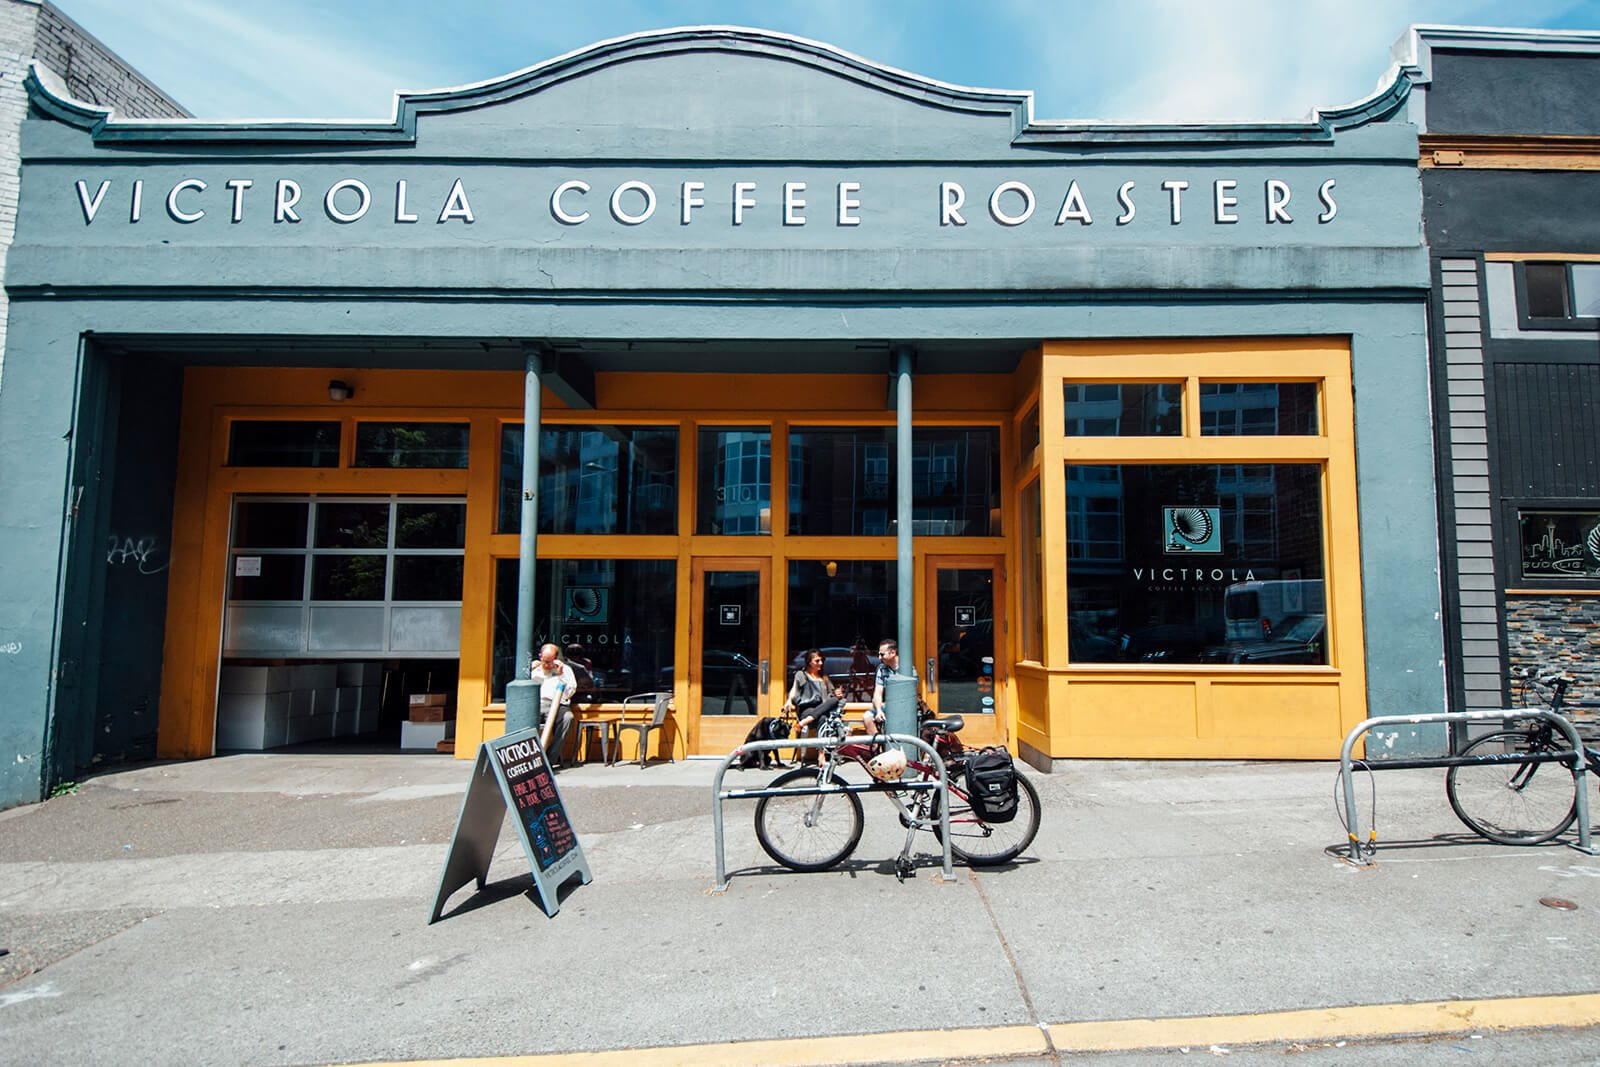 Enjoy Victrola Coffee Roaster's Coffee near Cirrus, 98121, WA